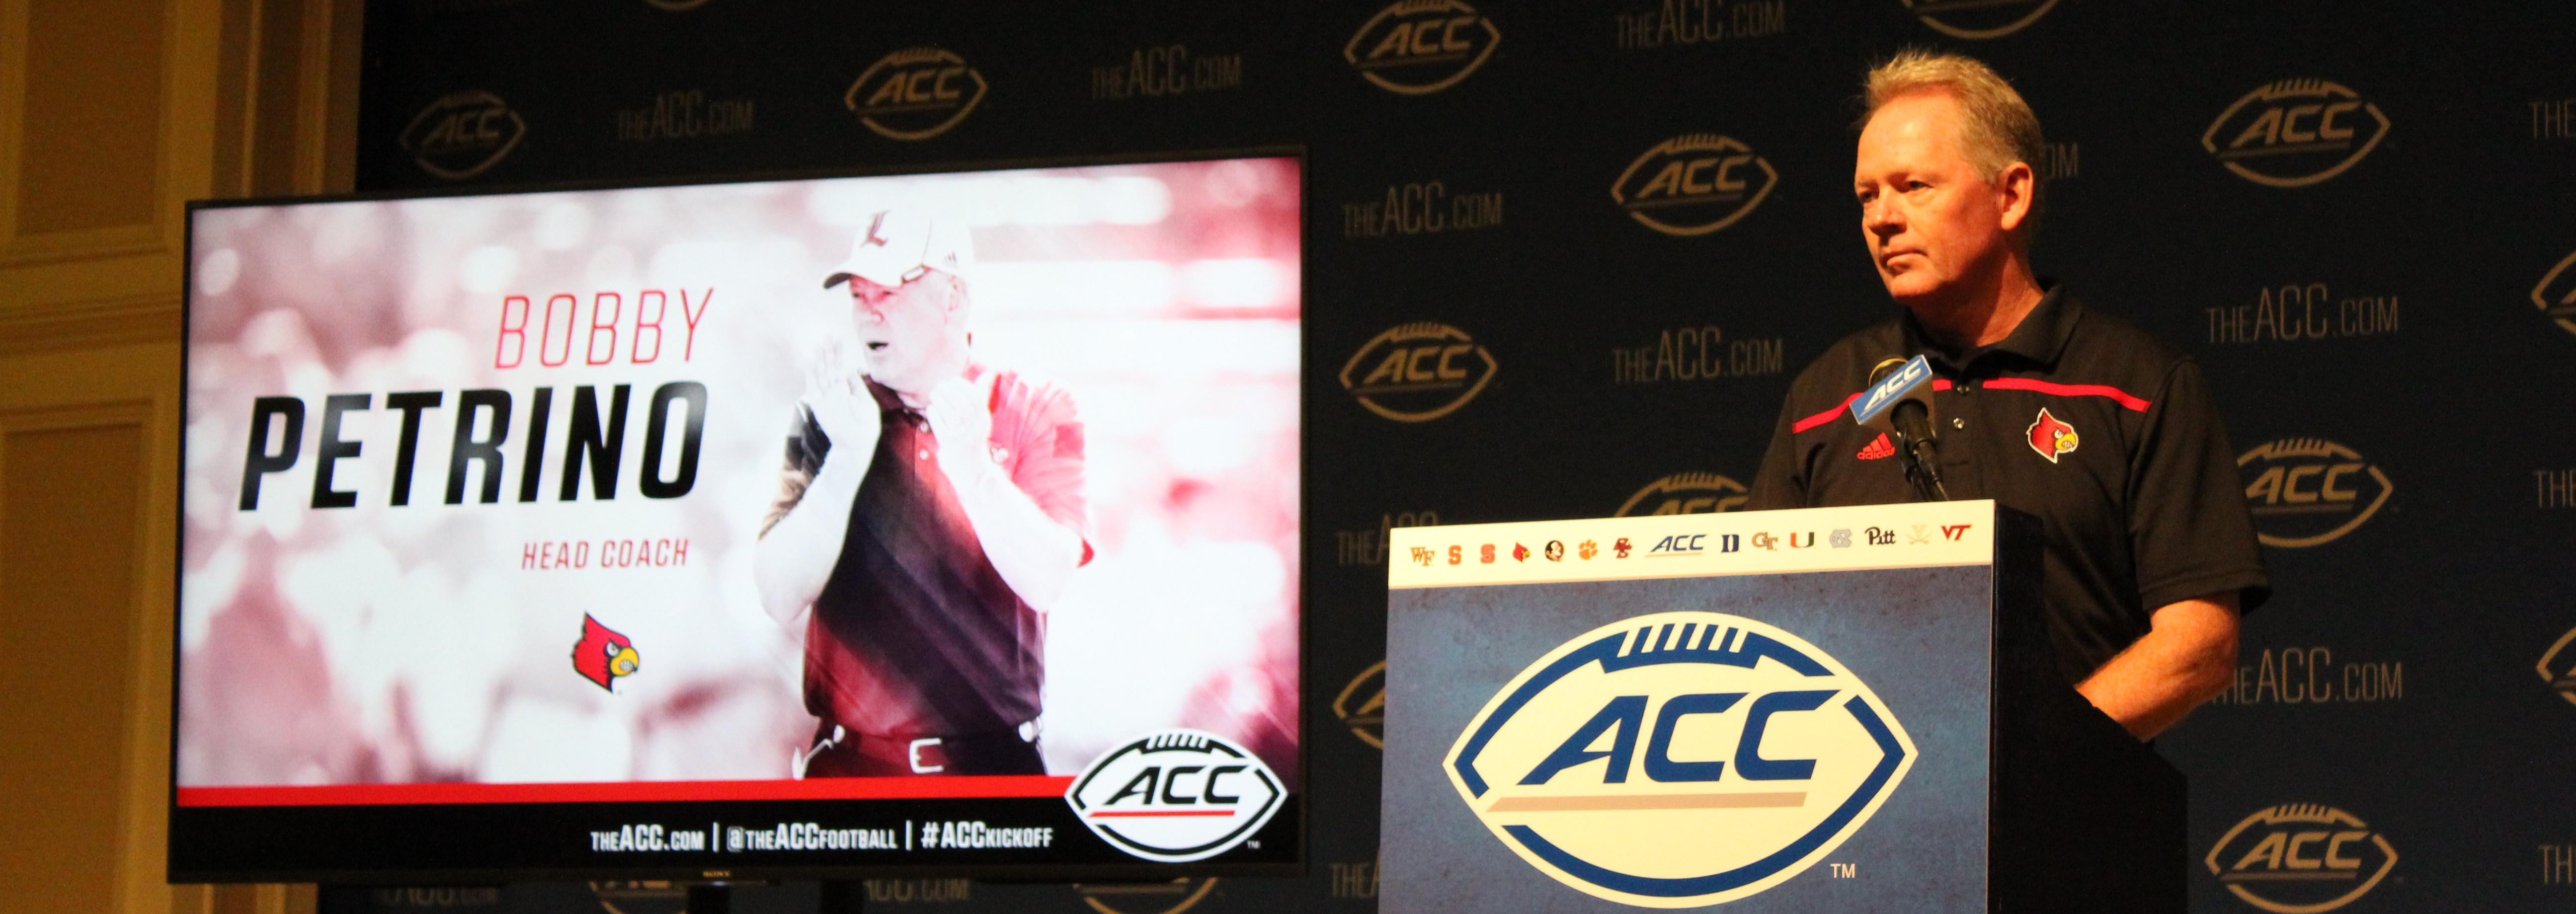 Bobby Petrino 2015 ACC Kickoff Photo by Mark Blankenbaker Fitted